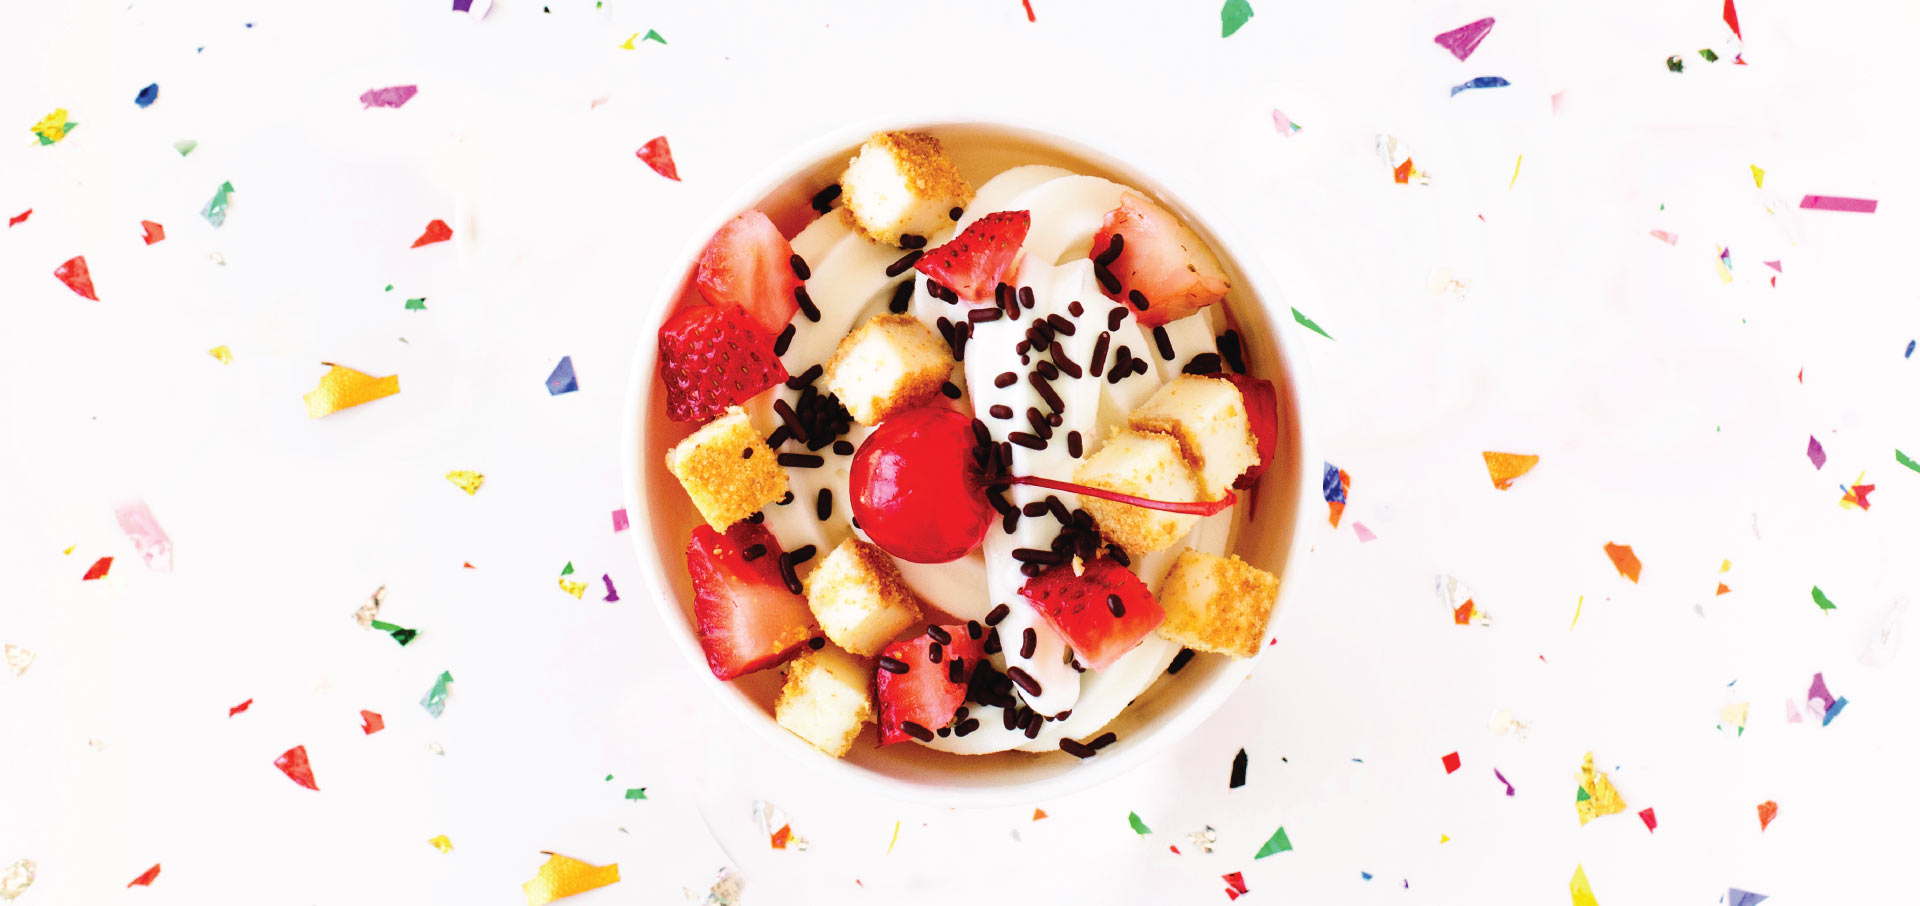 A bowl viewed from the top with fresh fruit, frozen yogurt, and chocolate sprinkles and a background of confetti on white